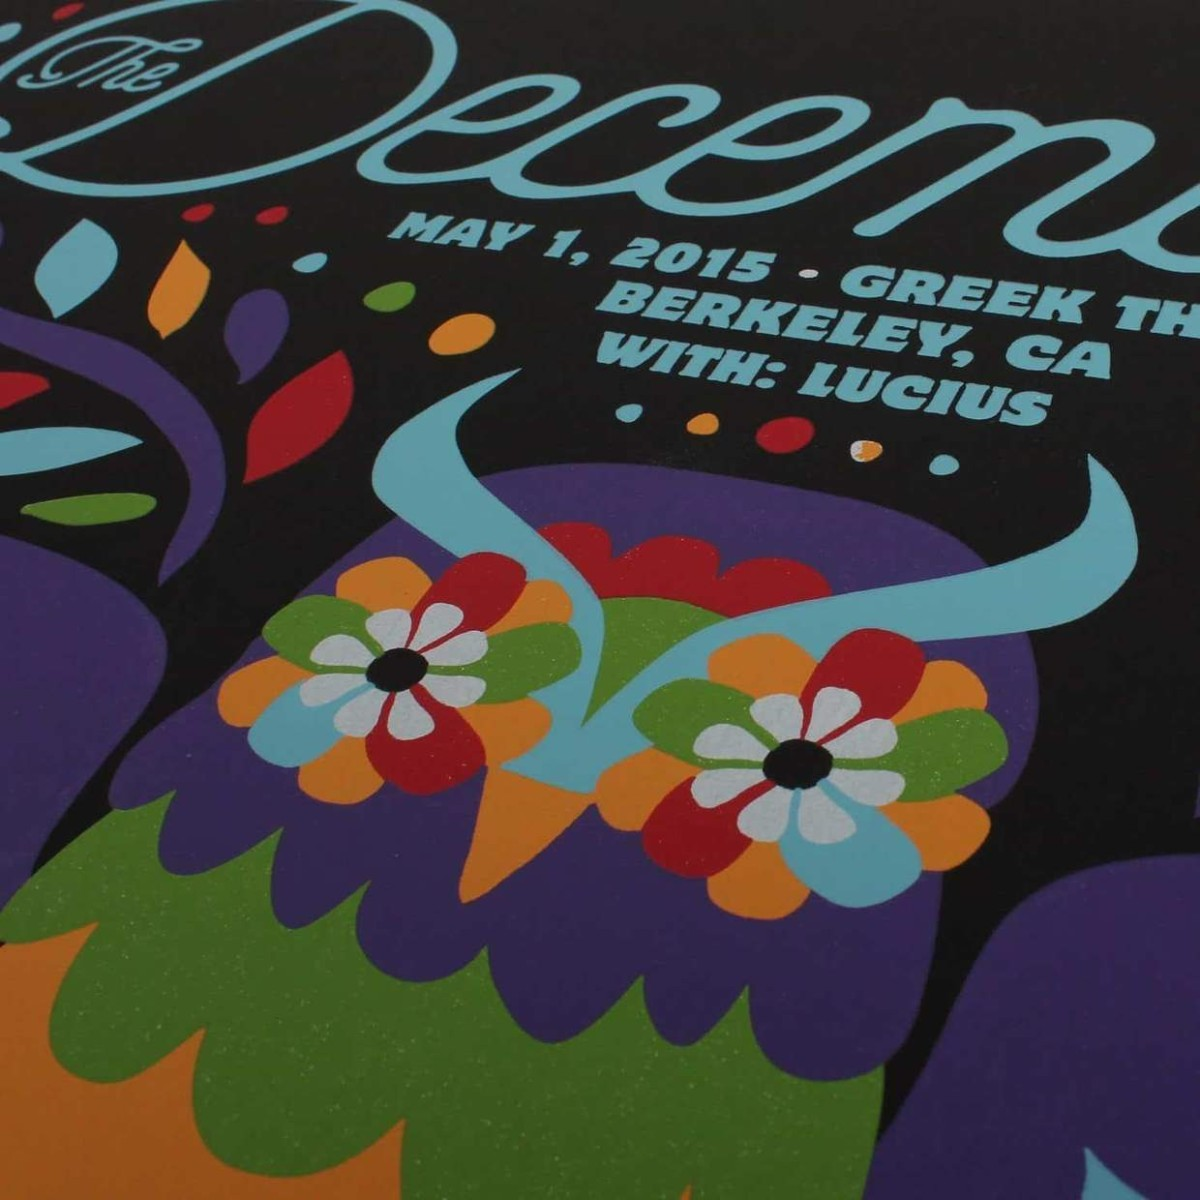 """The Decemberists at The Greek Theatre in Berkley 2015 Poster - 18"""" x 24"""""""